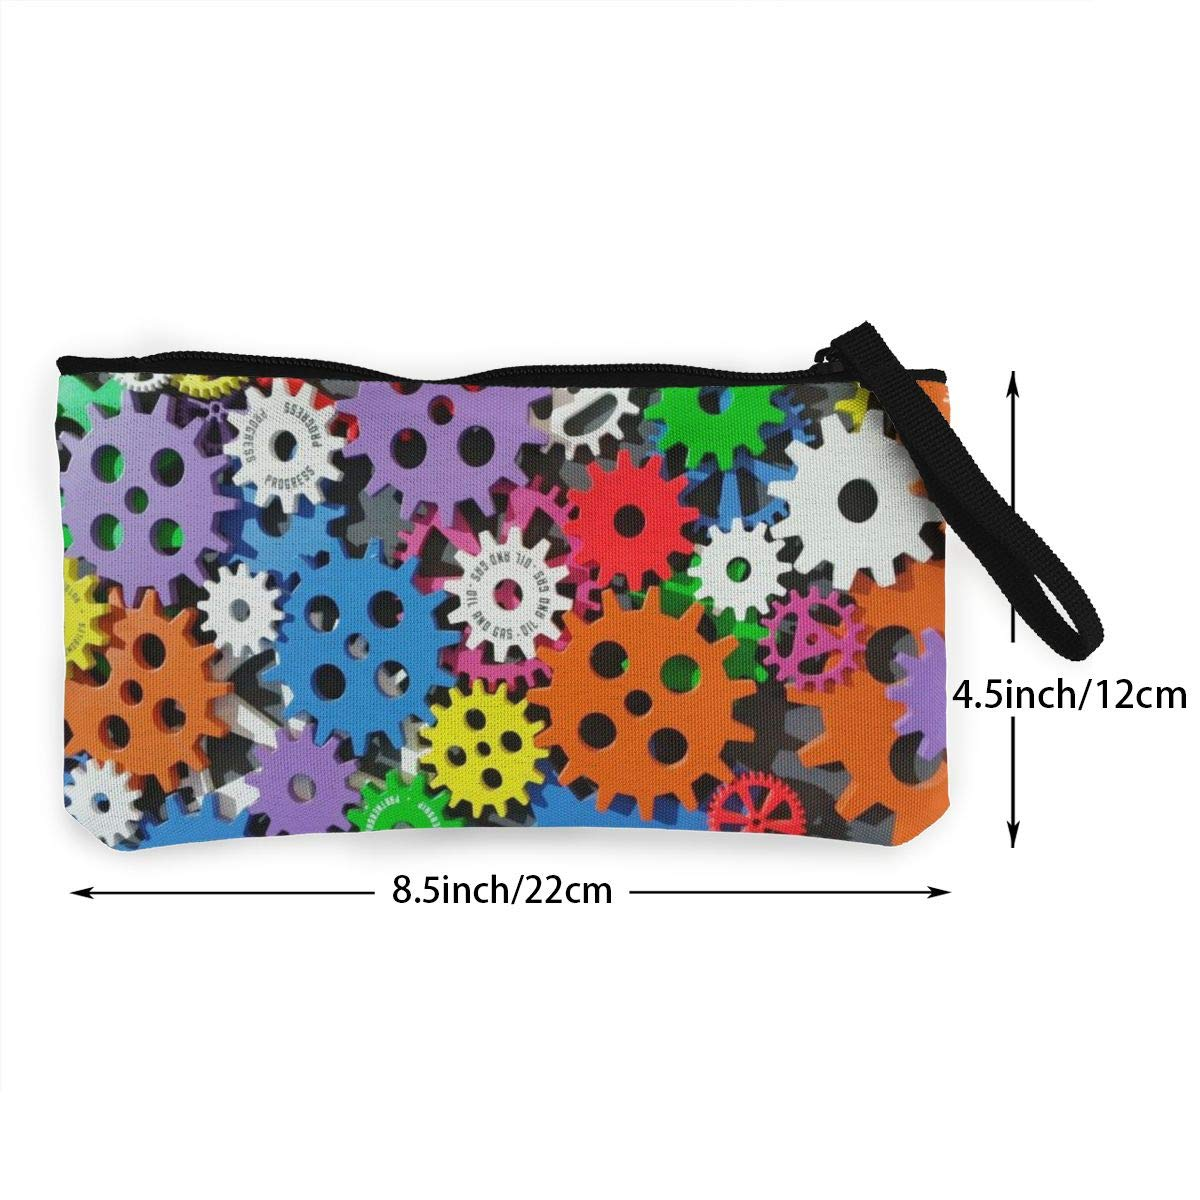 Coin Pouch Colorful Gear Canvas Coin Purse Cellphone Card Bag With Handle And Zipper